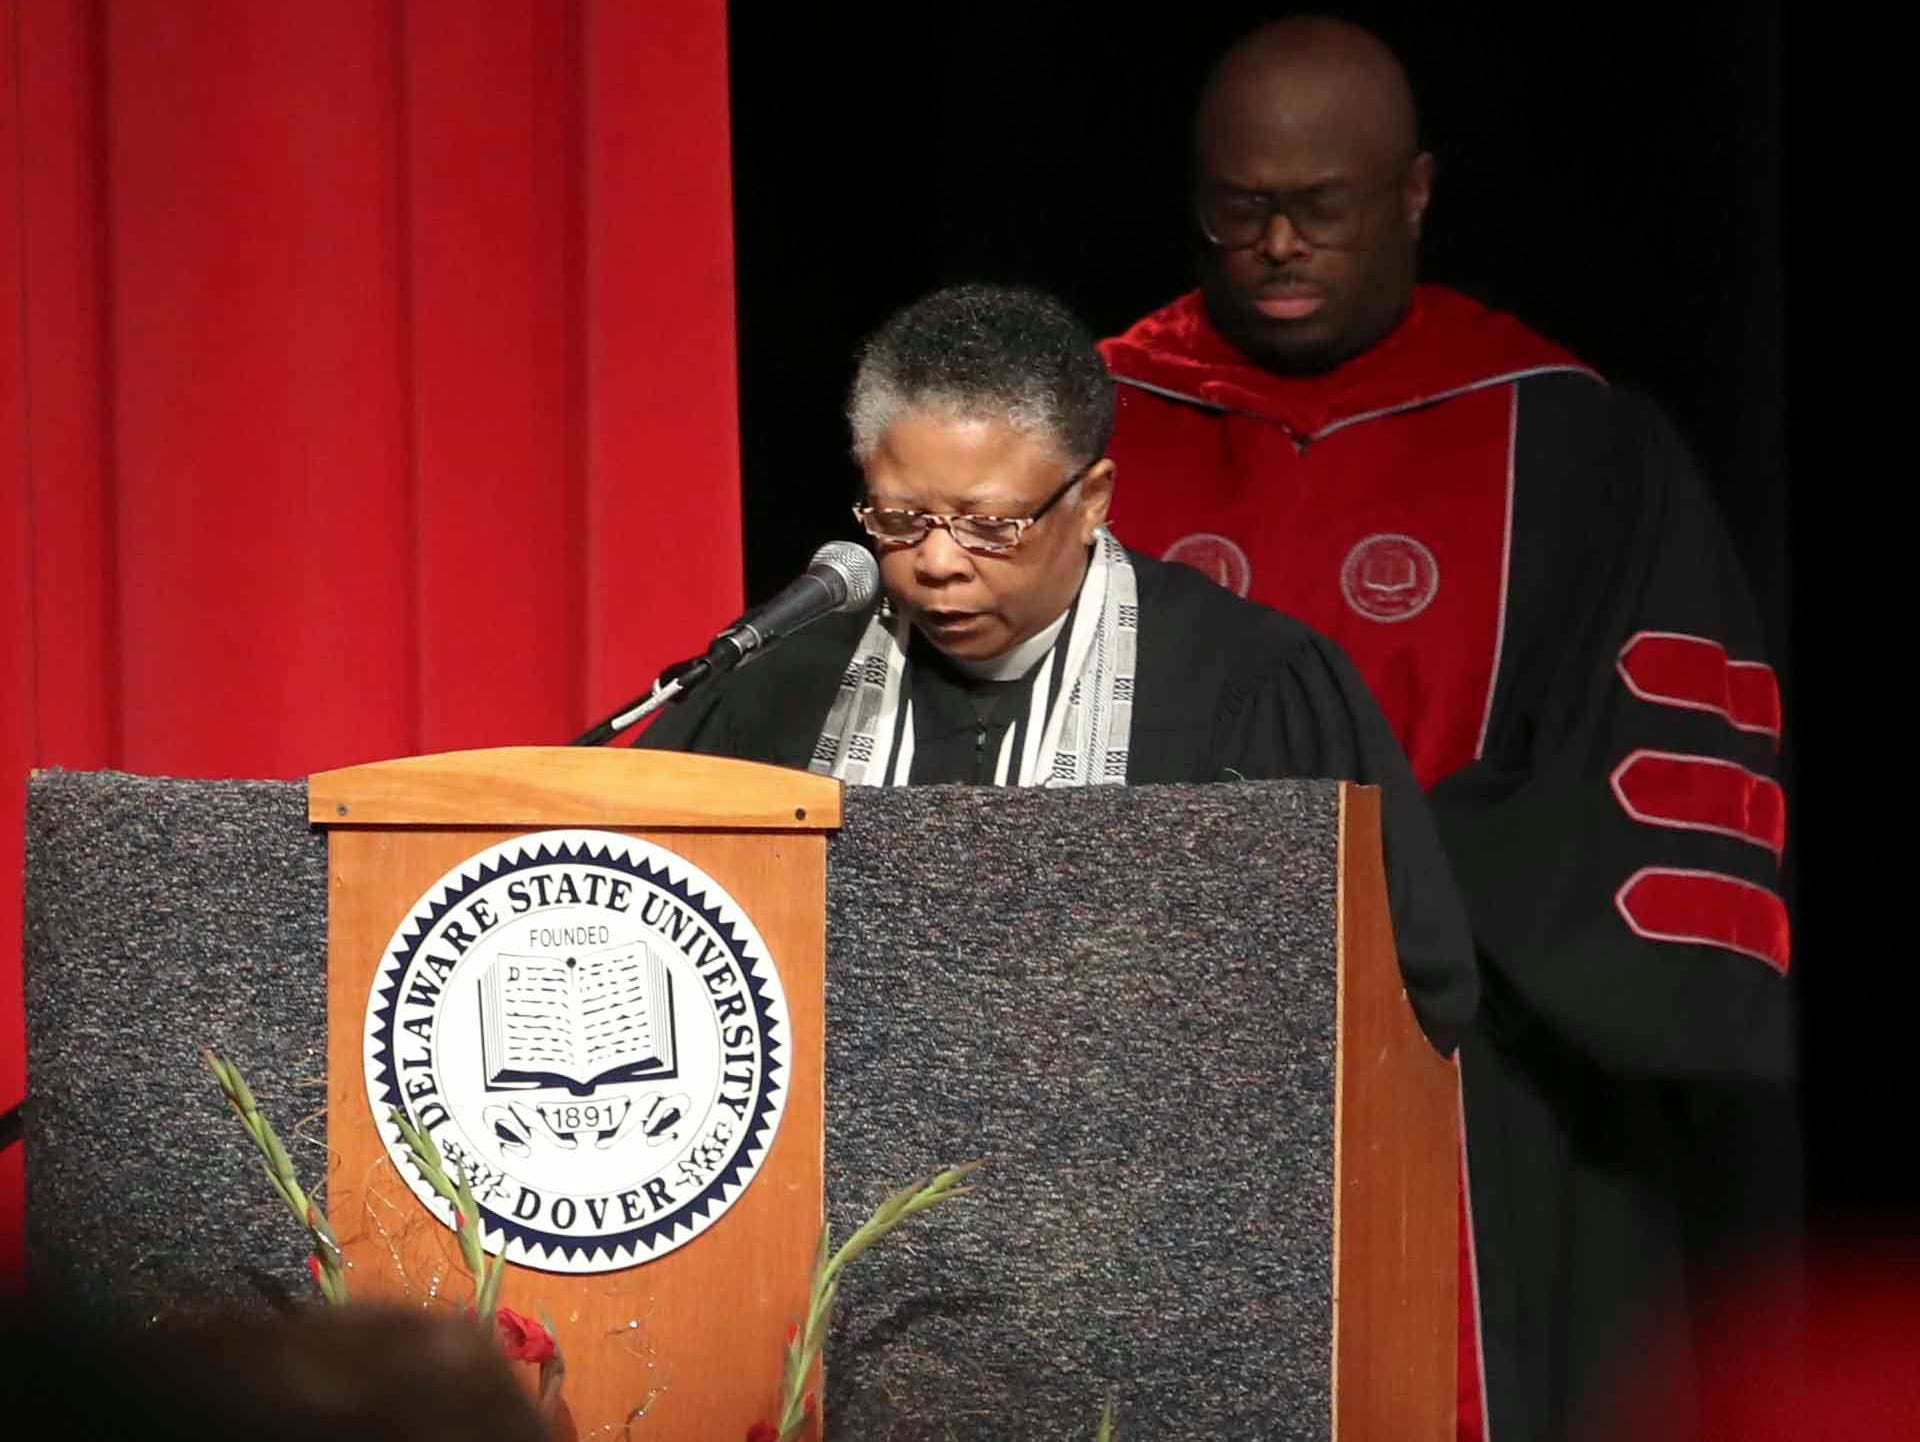 Rev. Rita Mishoe Paige delivers the invocation as her sister, Wilma Mishoe, is formally conferred with the presidency of Delaware State University in an investiture ceremony Saturday at the Dover campus. Mishoe, a daughter of the university's 7th president, had been interim president since January before being named president in July. She is the university's 11th president and first woman president.